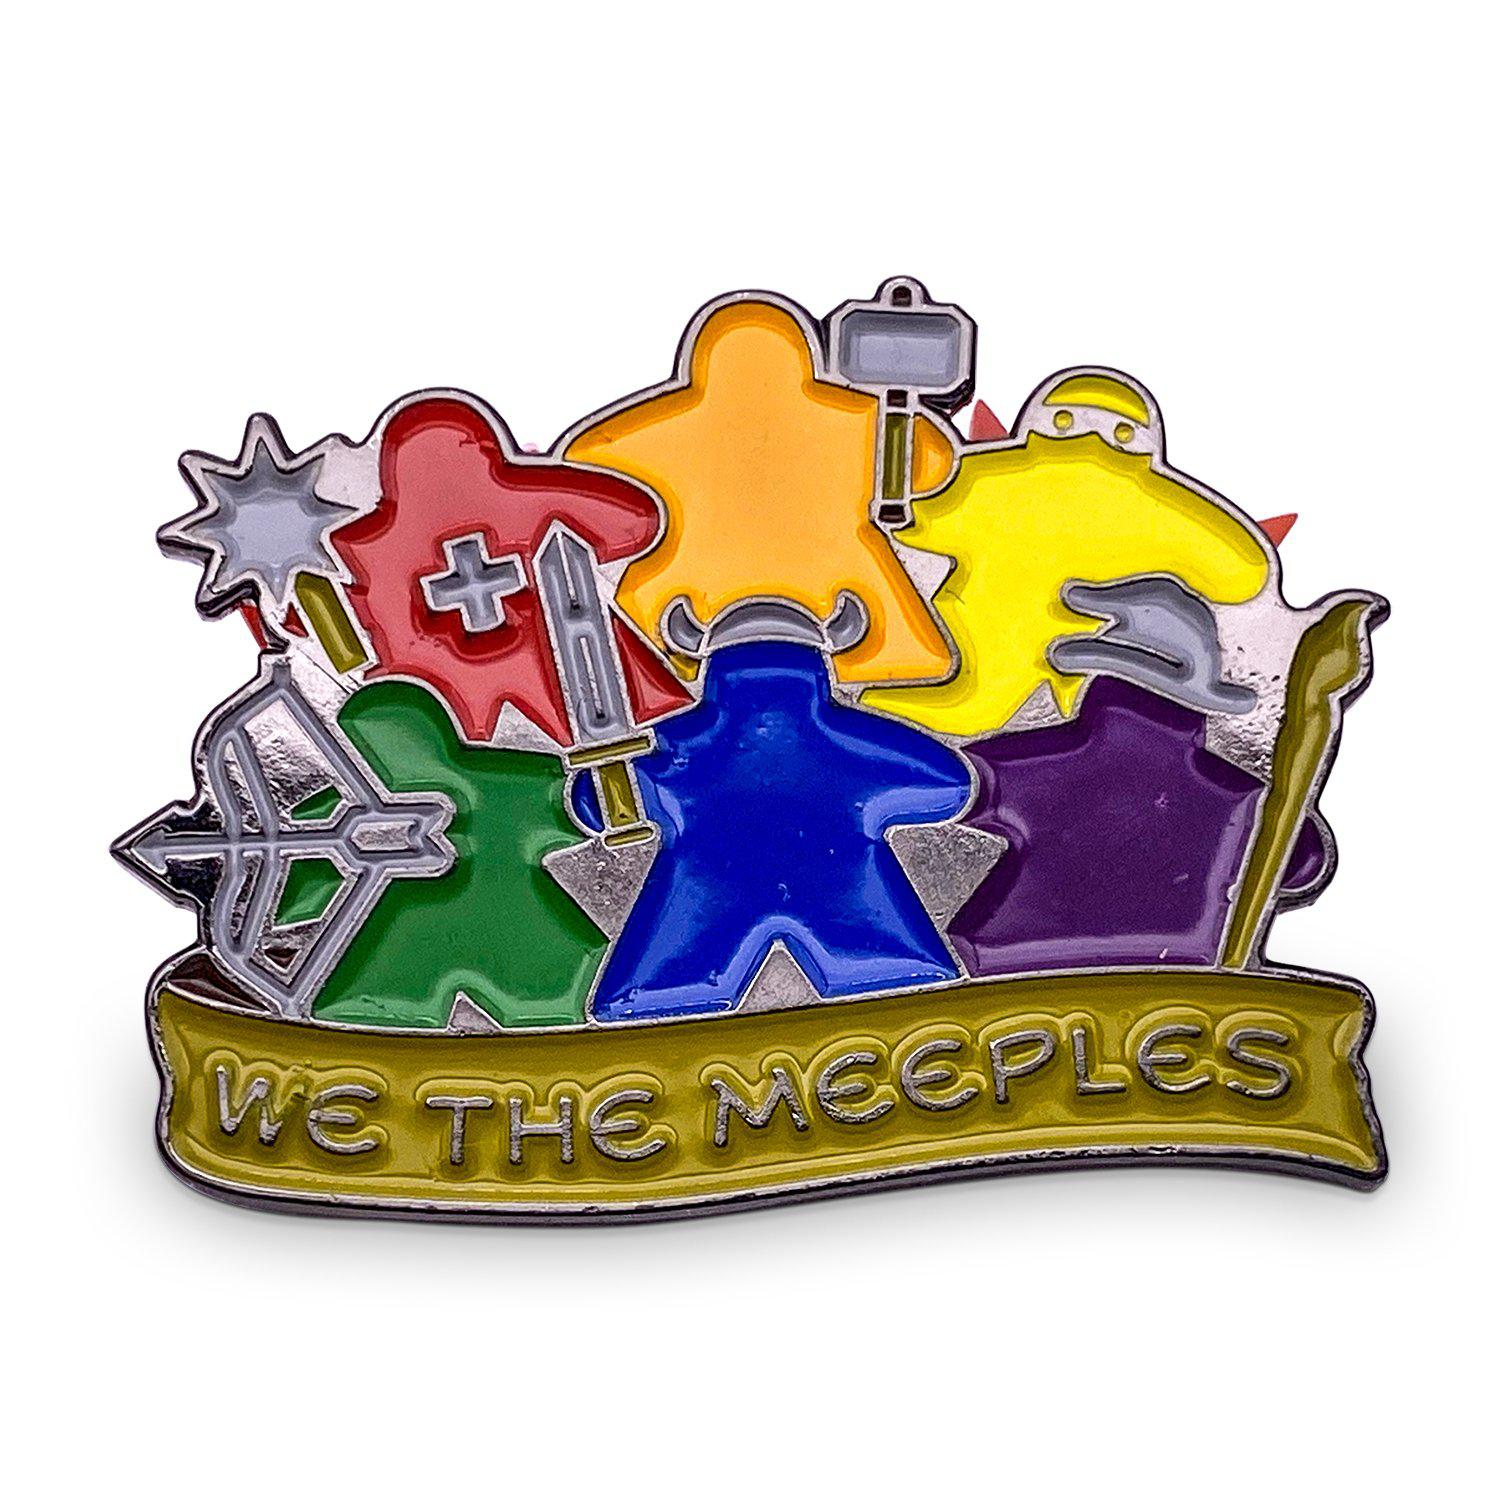 We the Meeples - Hard Enamel Adventure Pin Metal by Norse Foundry